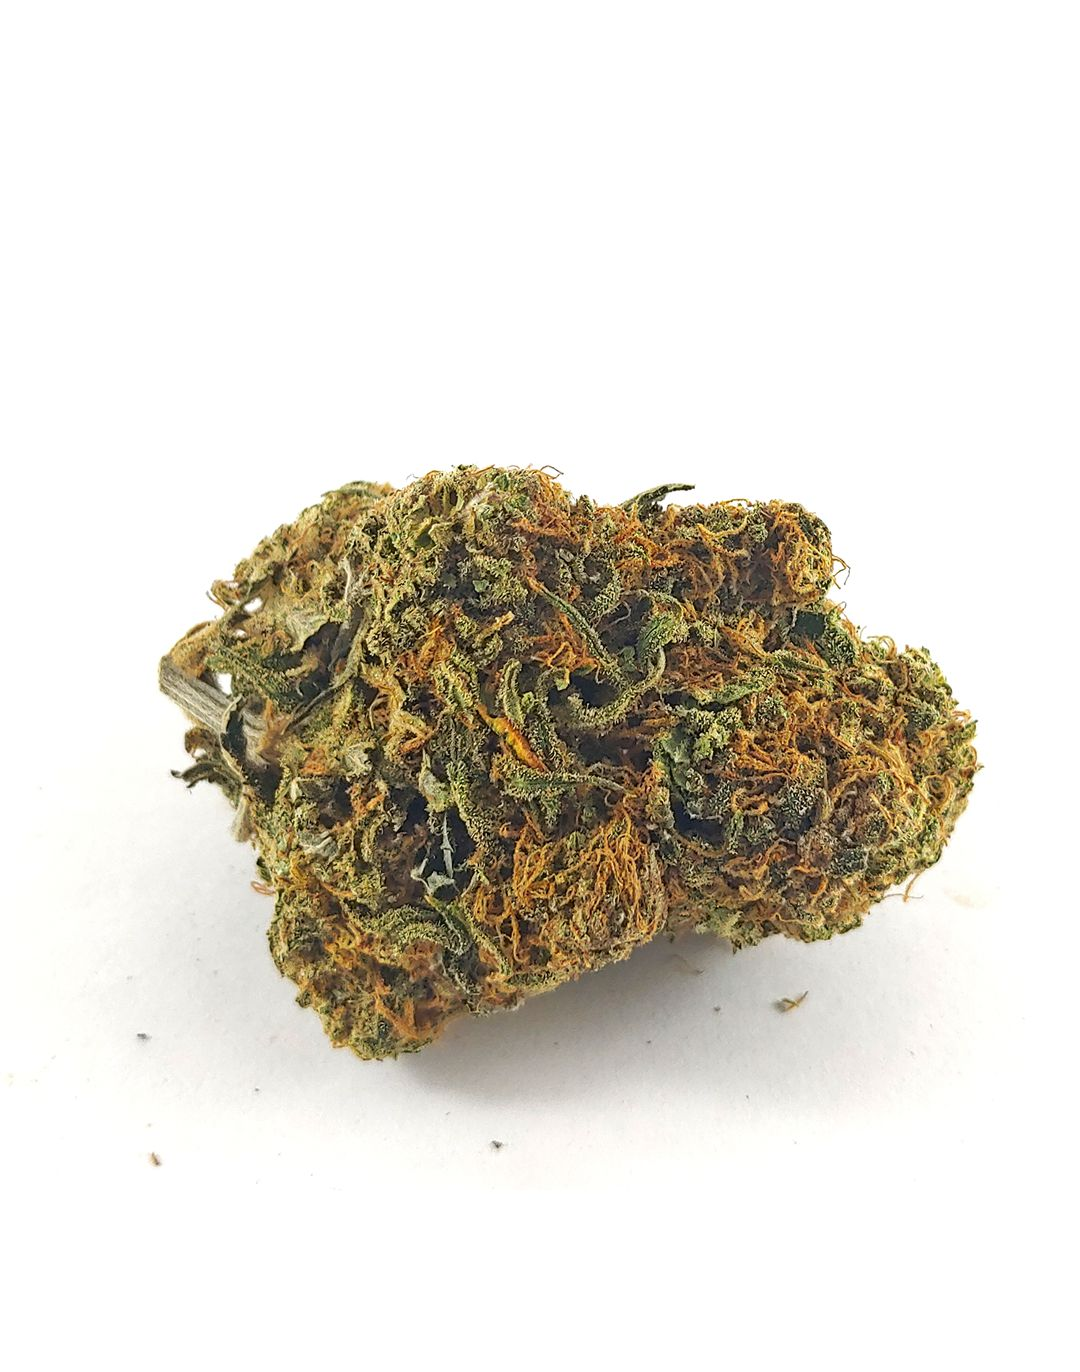 (AAA) Strawberry Banana by Ganja Grams - Image © 2020 Ganja Grams. All Rights Reserved.